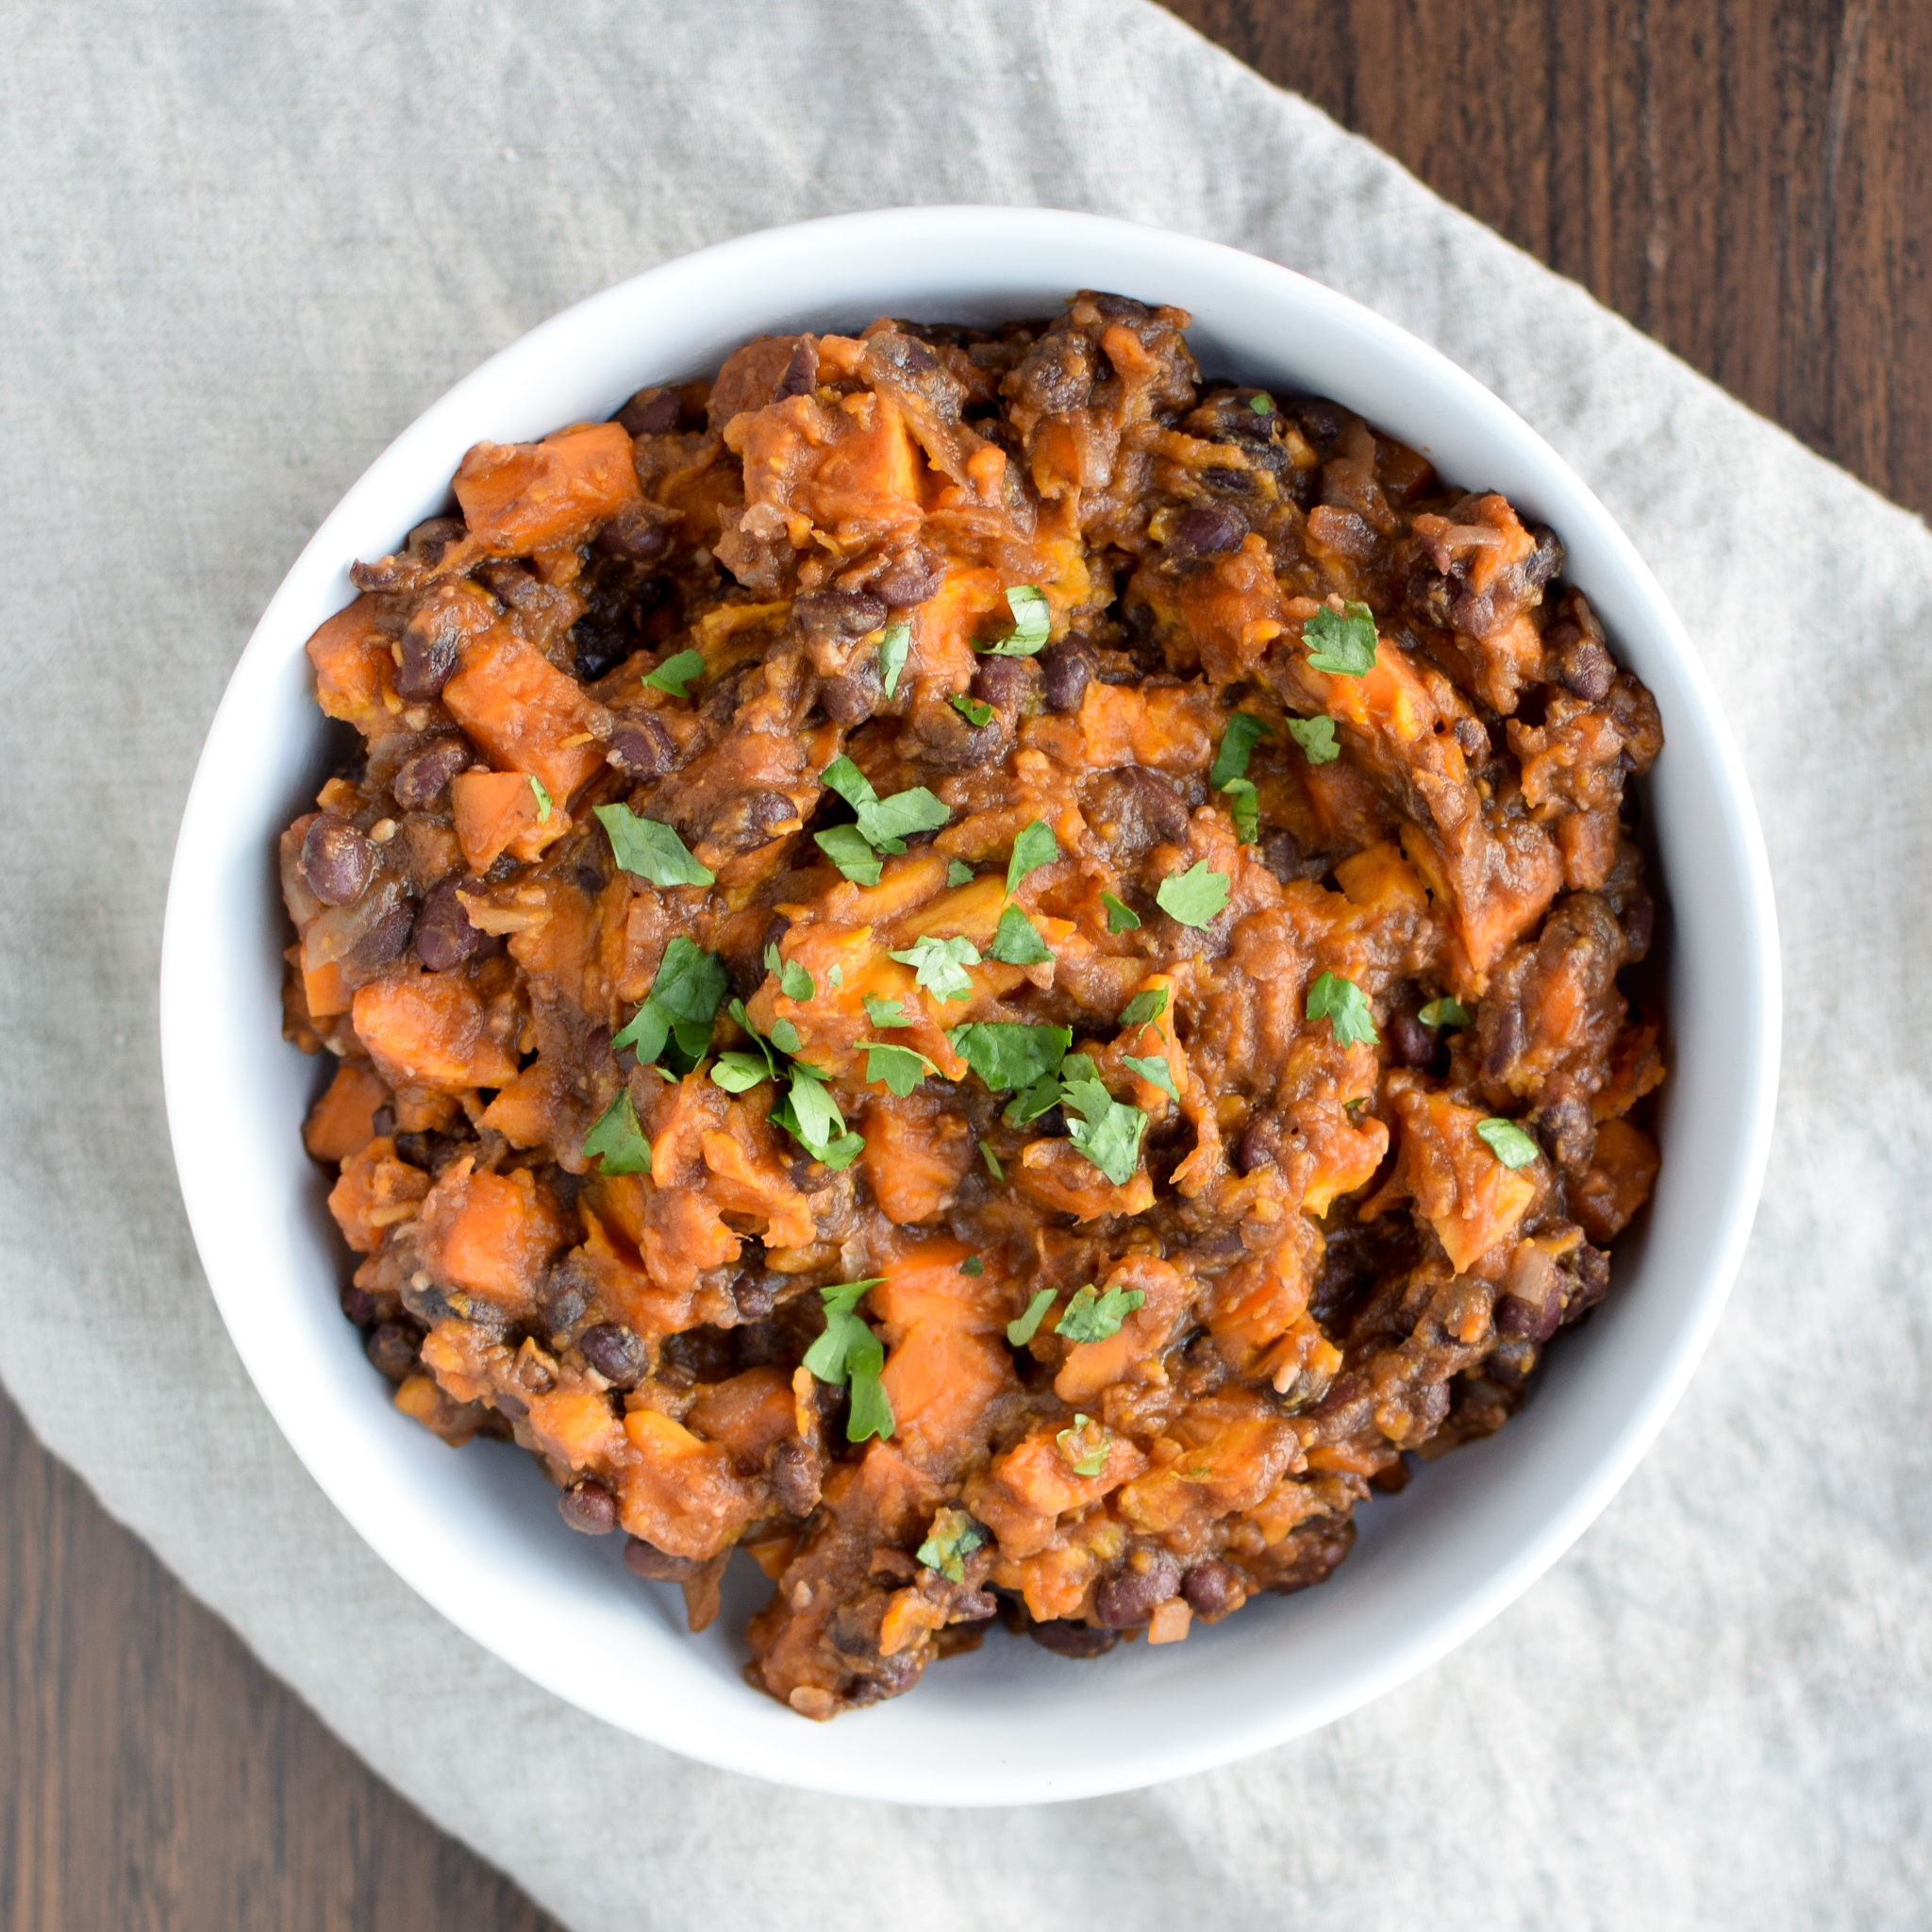 BBQ Black Bean Slow Cooker Sweet Potatoes - Black beans, sweet potatoes, and spicy BBQ sauce. A match made in side dish heaven! - ProjectMealPlan.com